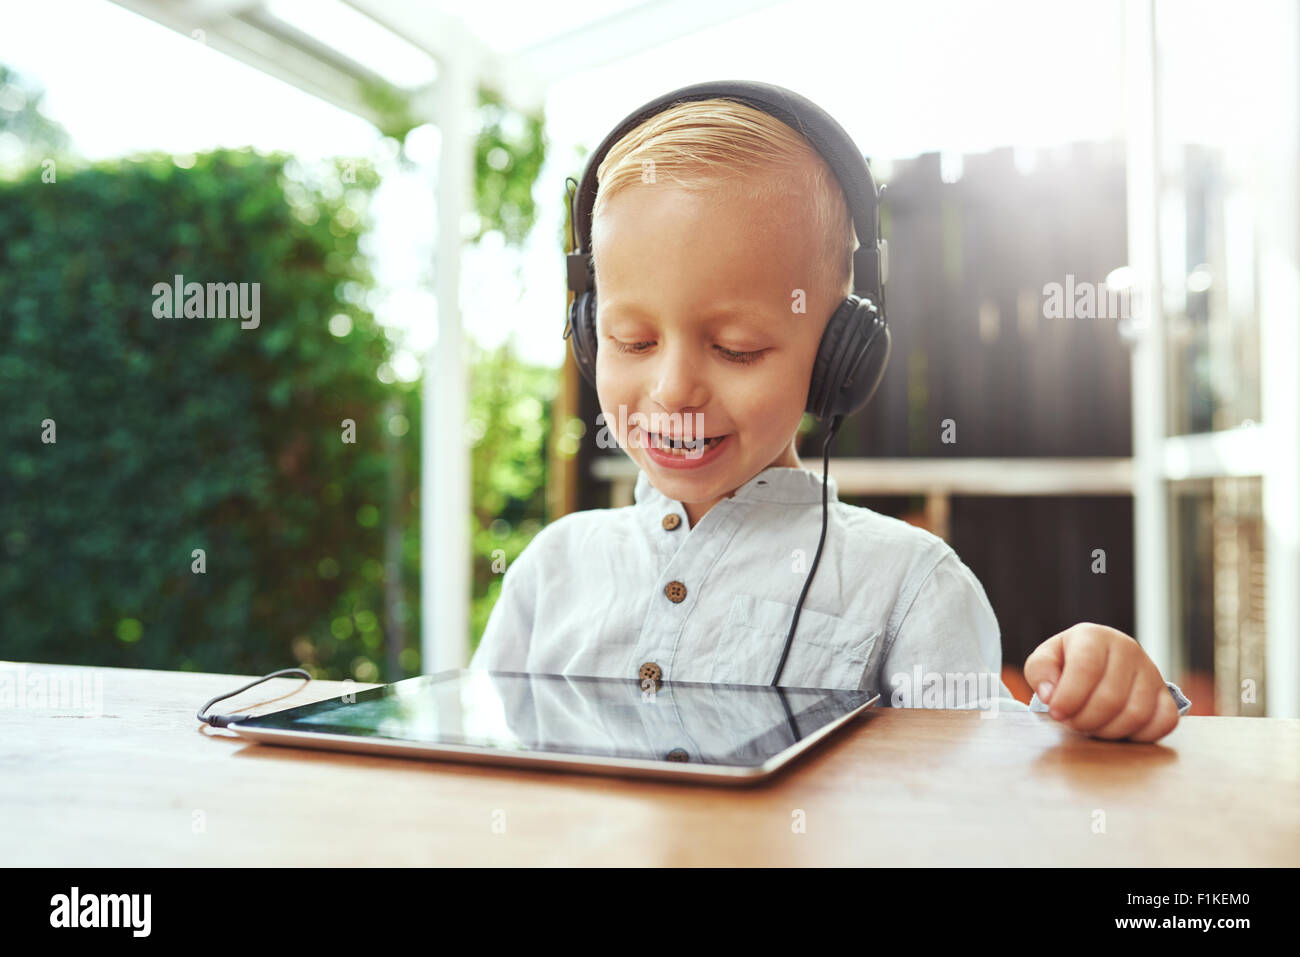 Happy laughing little boy listening to music on his tablet-pc through stereo headphones as he sits outdoors on a - Stock Image